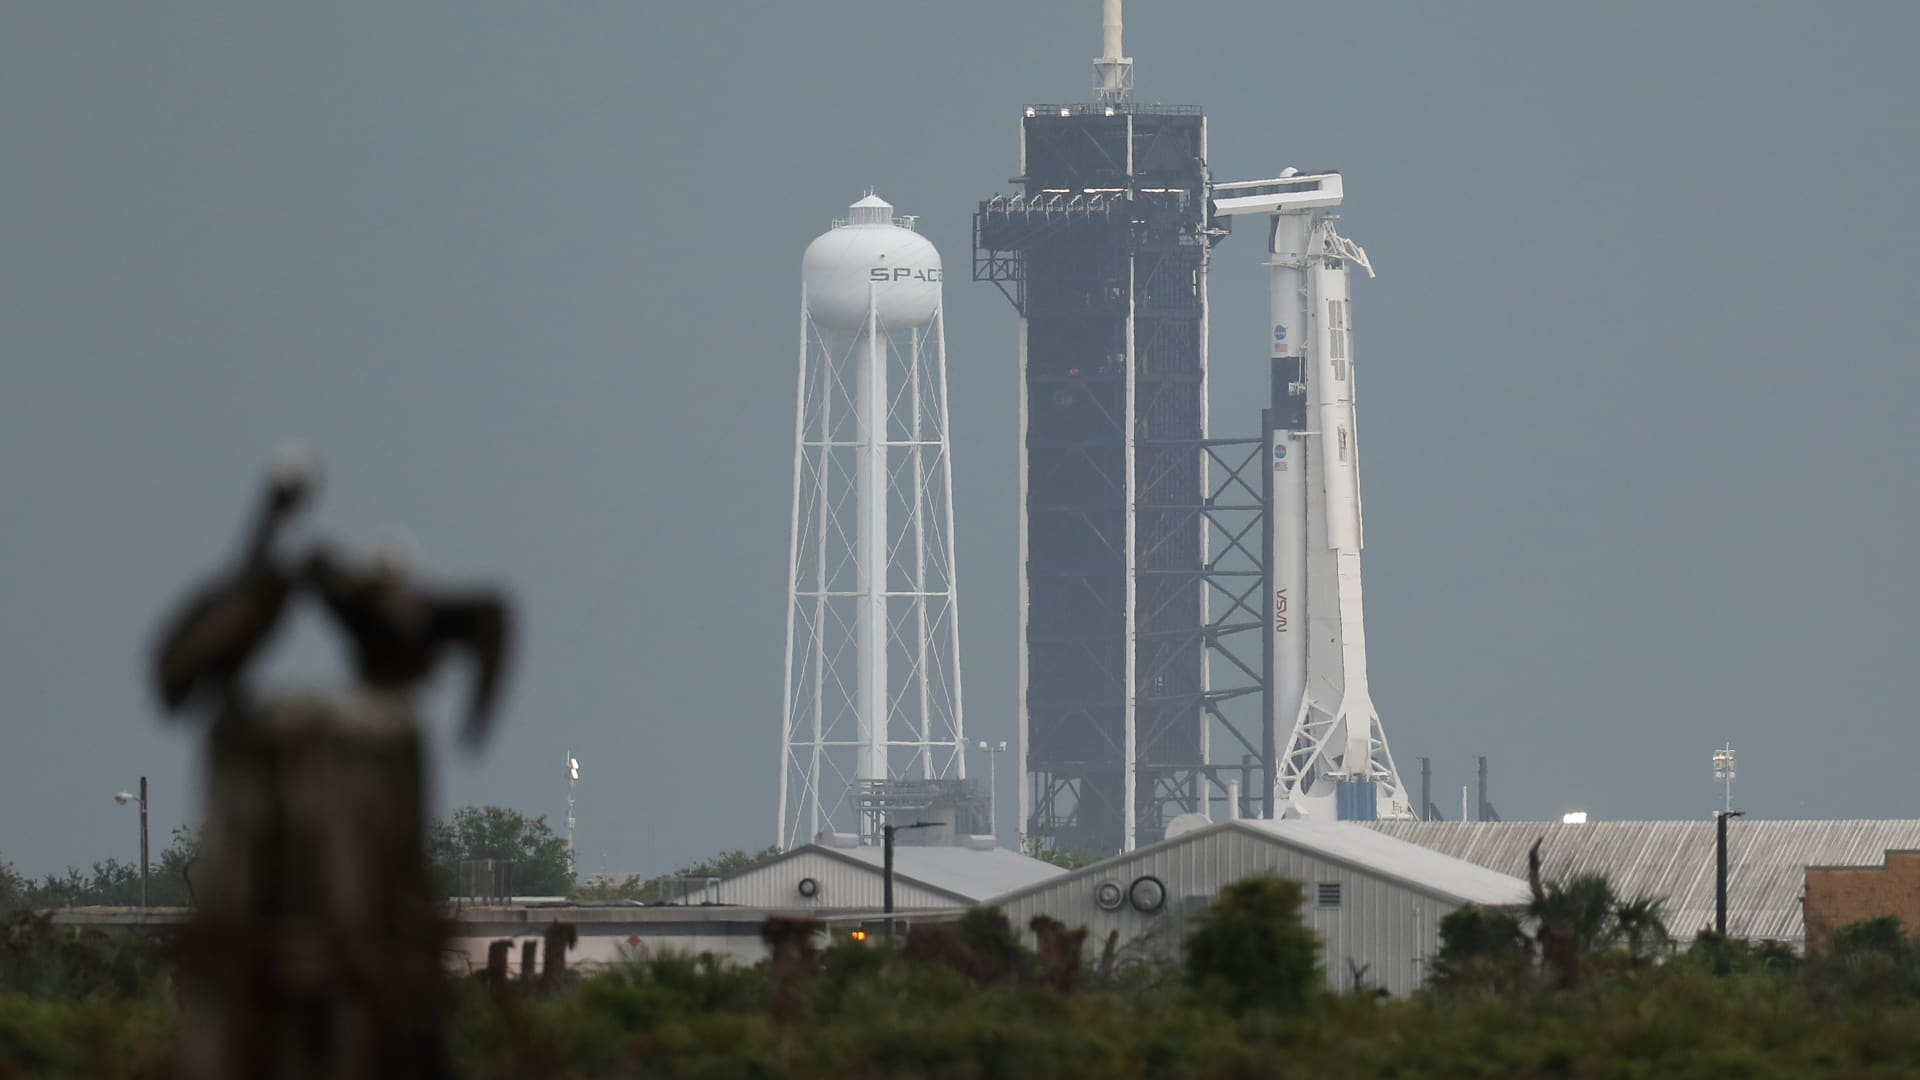 The SpaceX Falcon 9 rocket with the Crew Dragon spacecraft attached sits on launch pad 39A at the Kennedy Space Center on May 27, 2020 in Cape Canaveral, Florida.